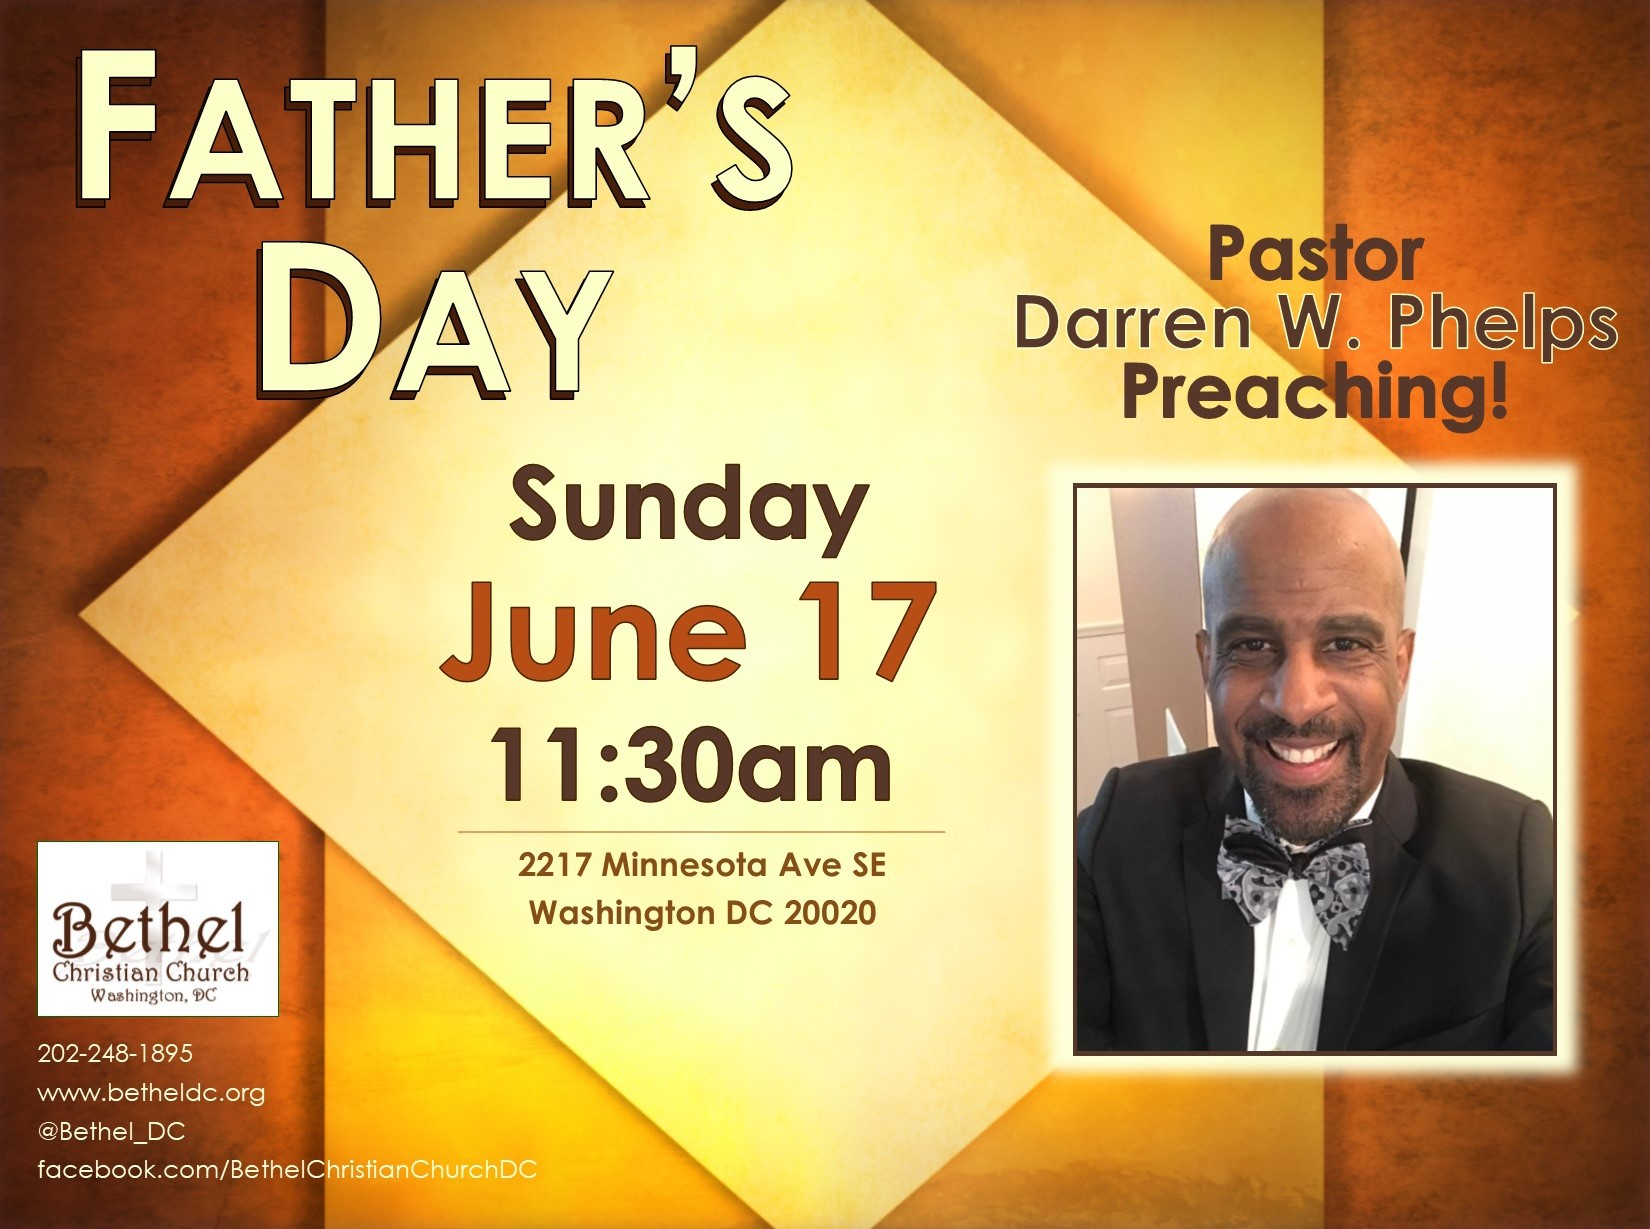 June 17, 2018 - Father's Day. Pastor Darren preaching.